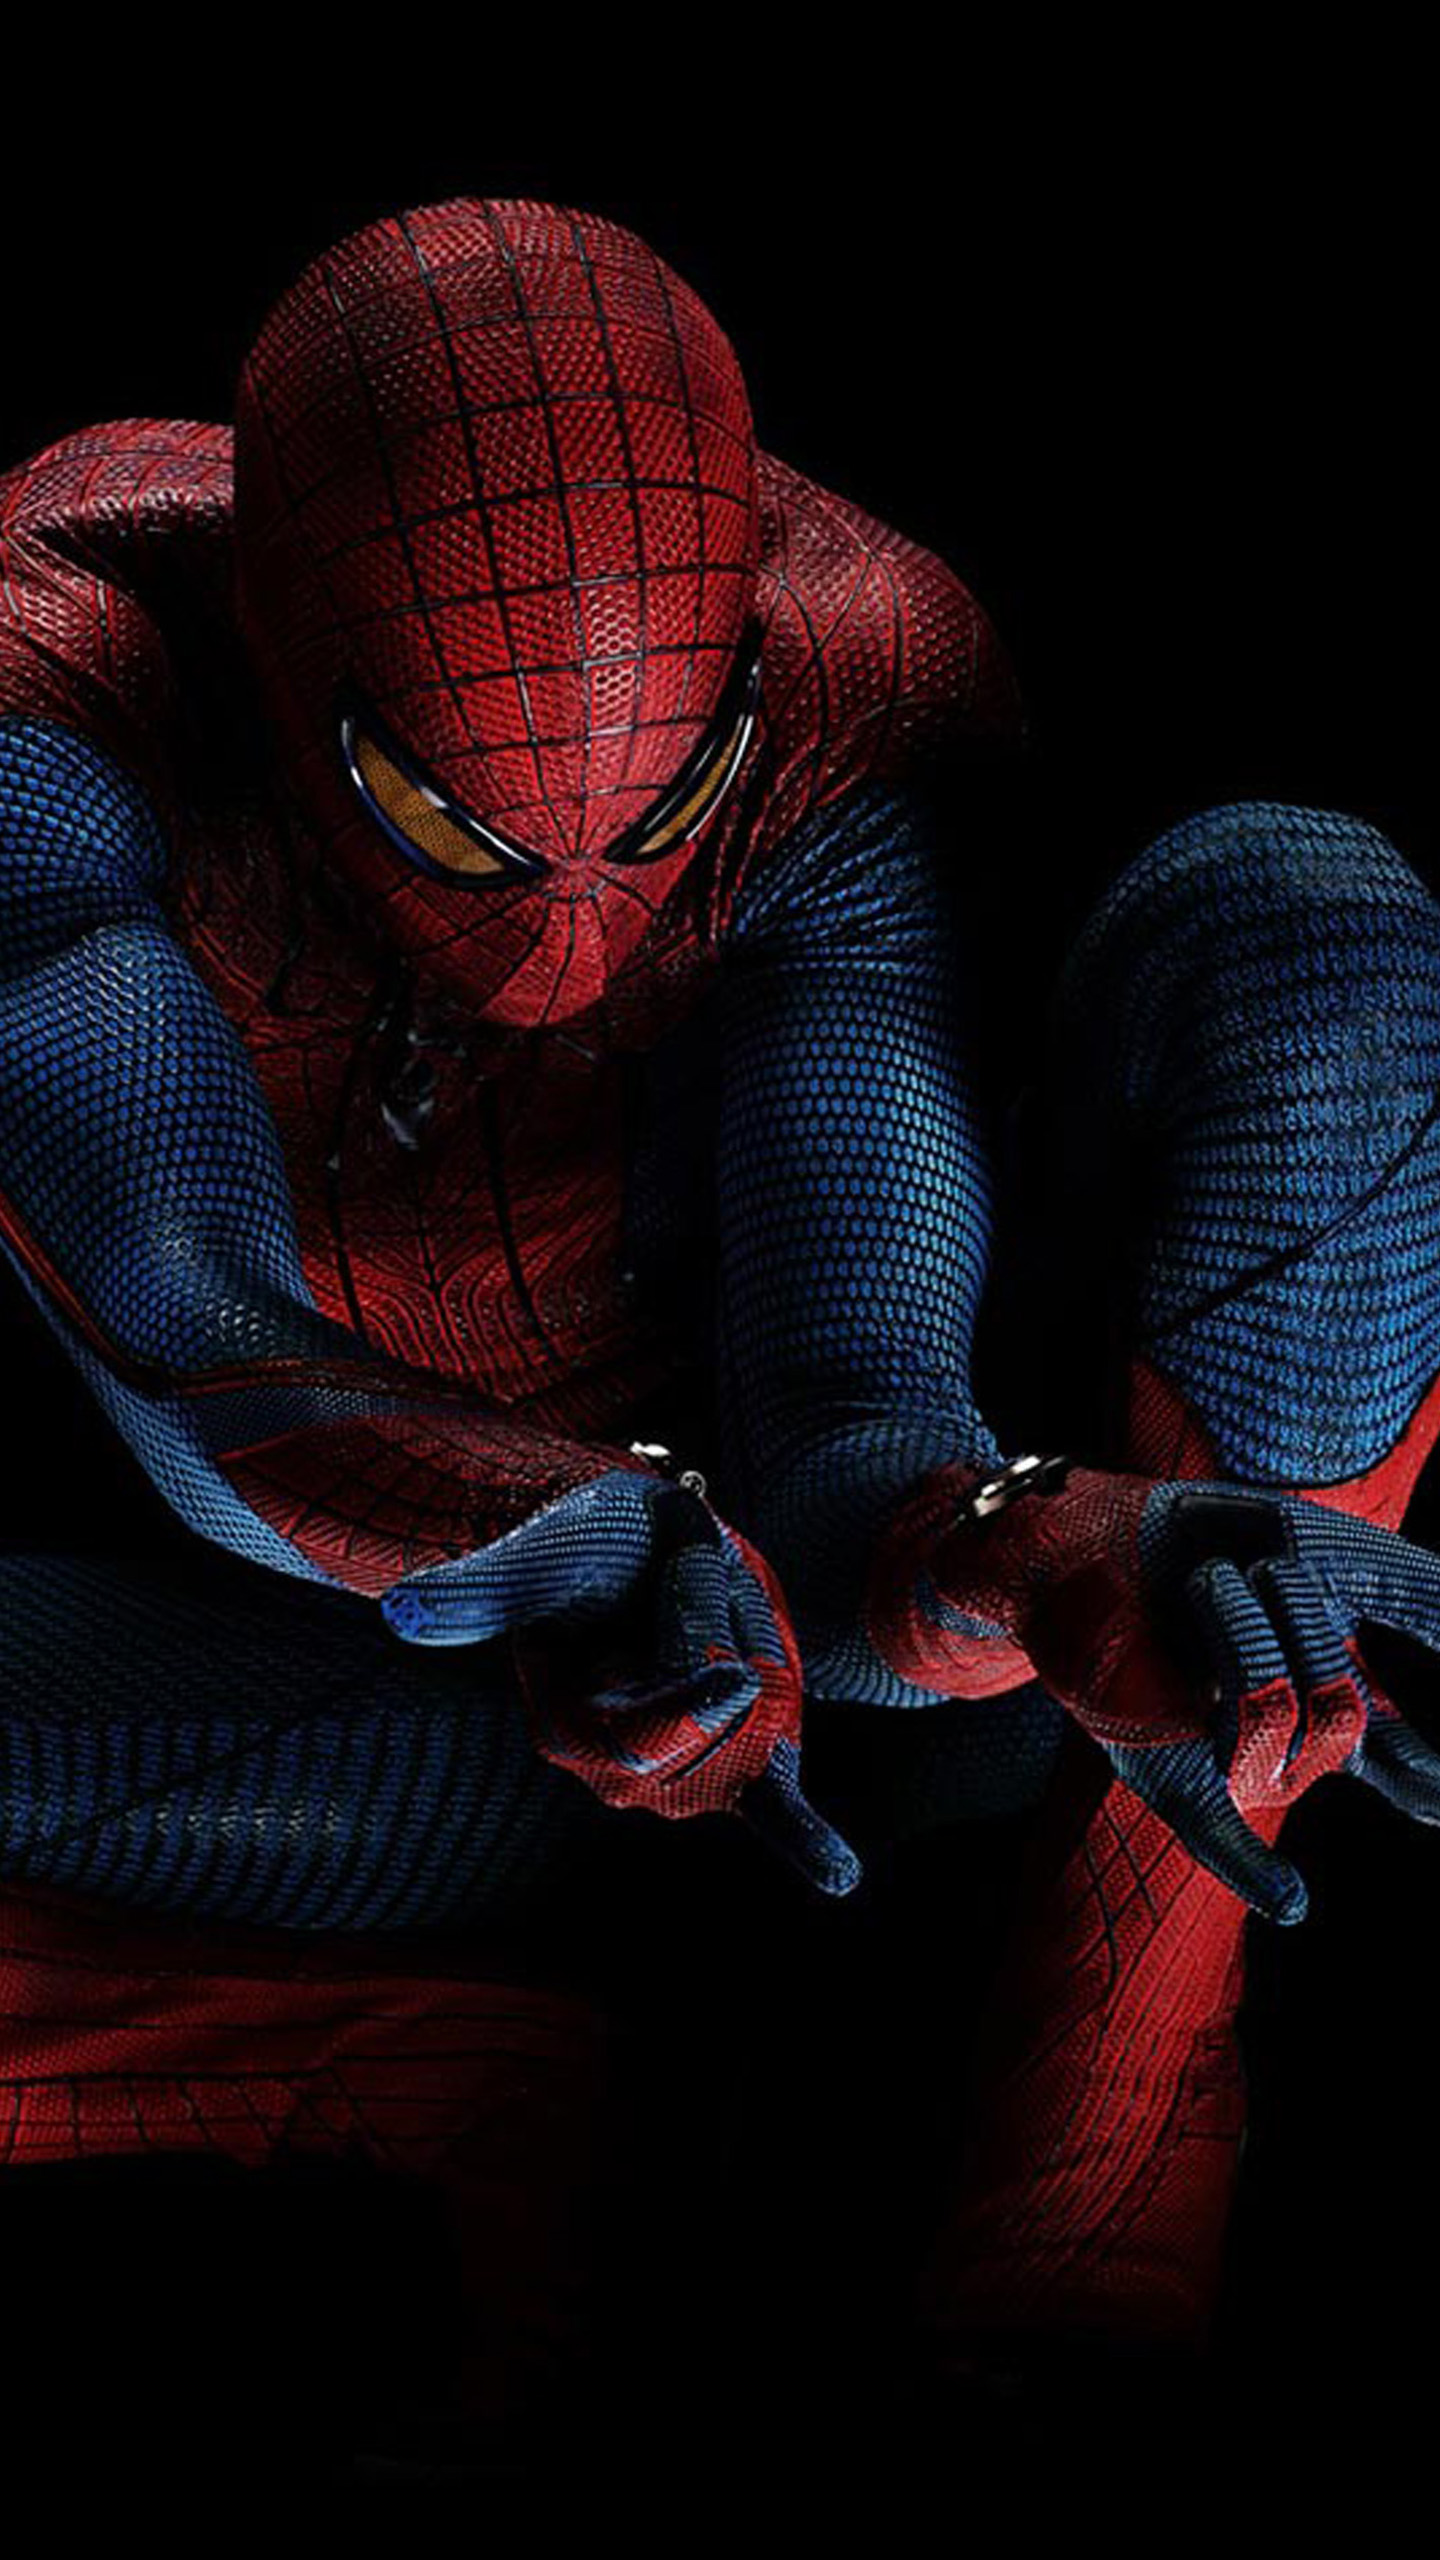 Xiaomi Mi Note Pro Wallpapers 3D Spiderman Android Wallpapers